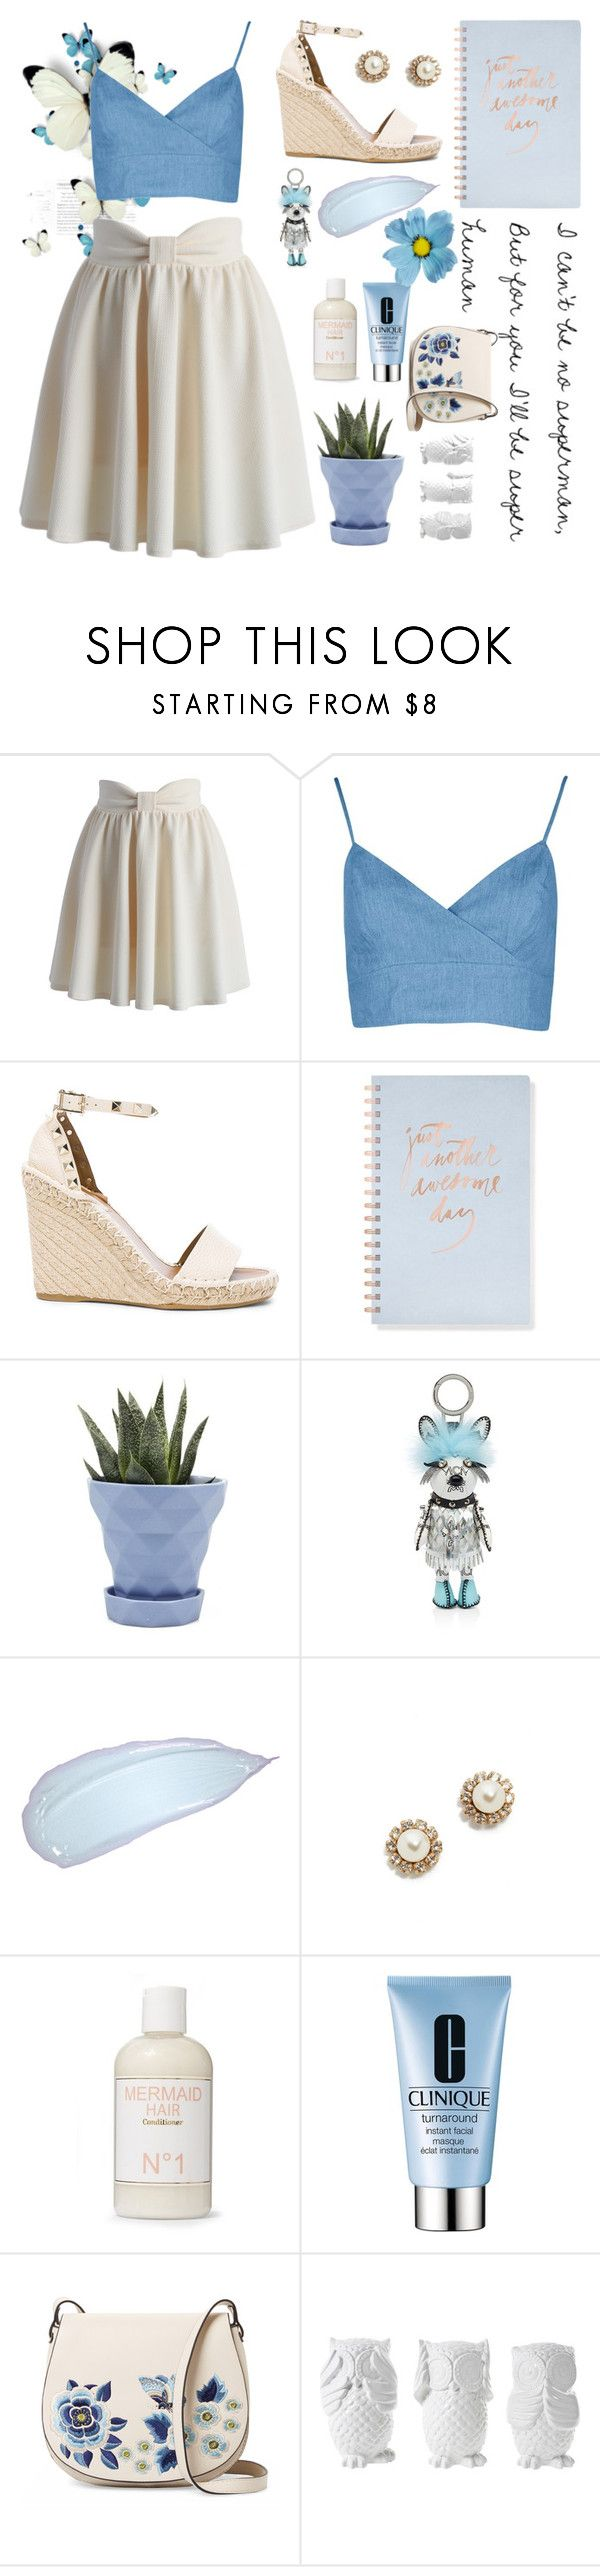 """""""Superhuman Girl"""" by alongcametwiggy ❤ liked on Polyvore featuring Chicwish, Valentino, Fringe, Chive, MCM, Marc Jacobs, Liberty, Clinique, French Connection and Design 55"""